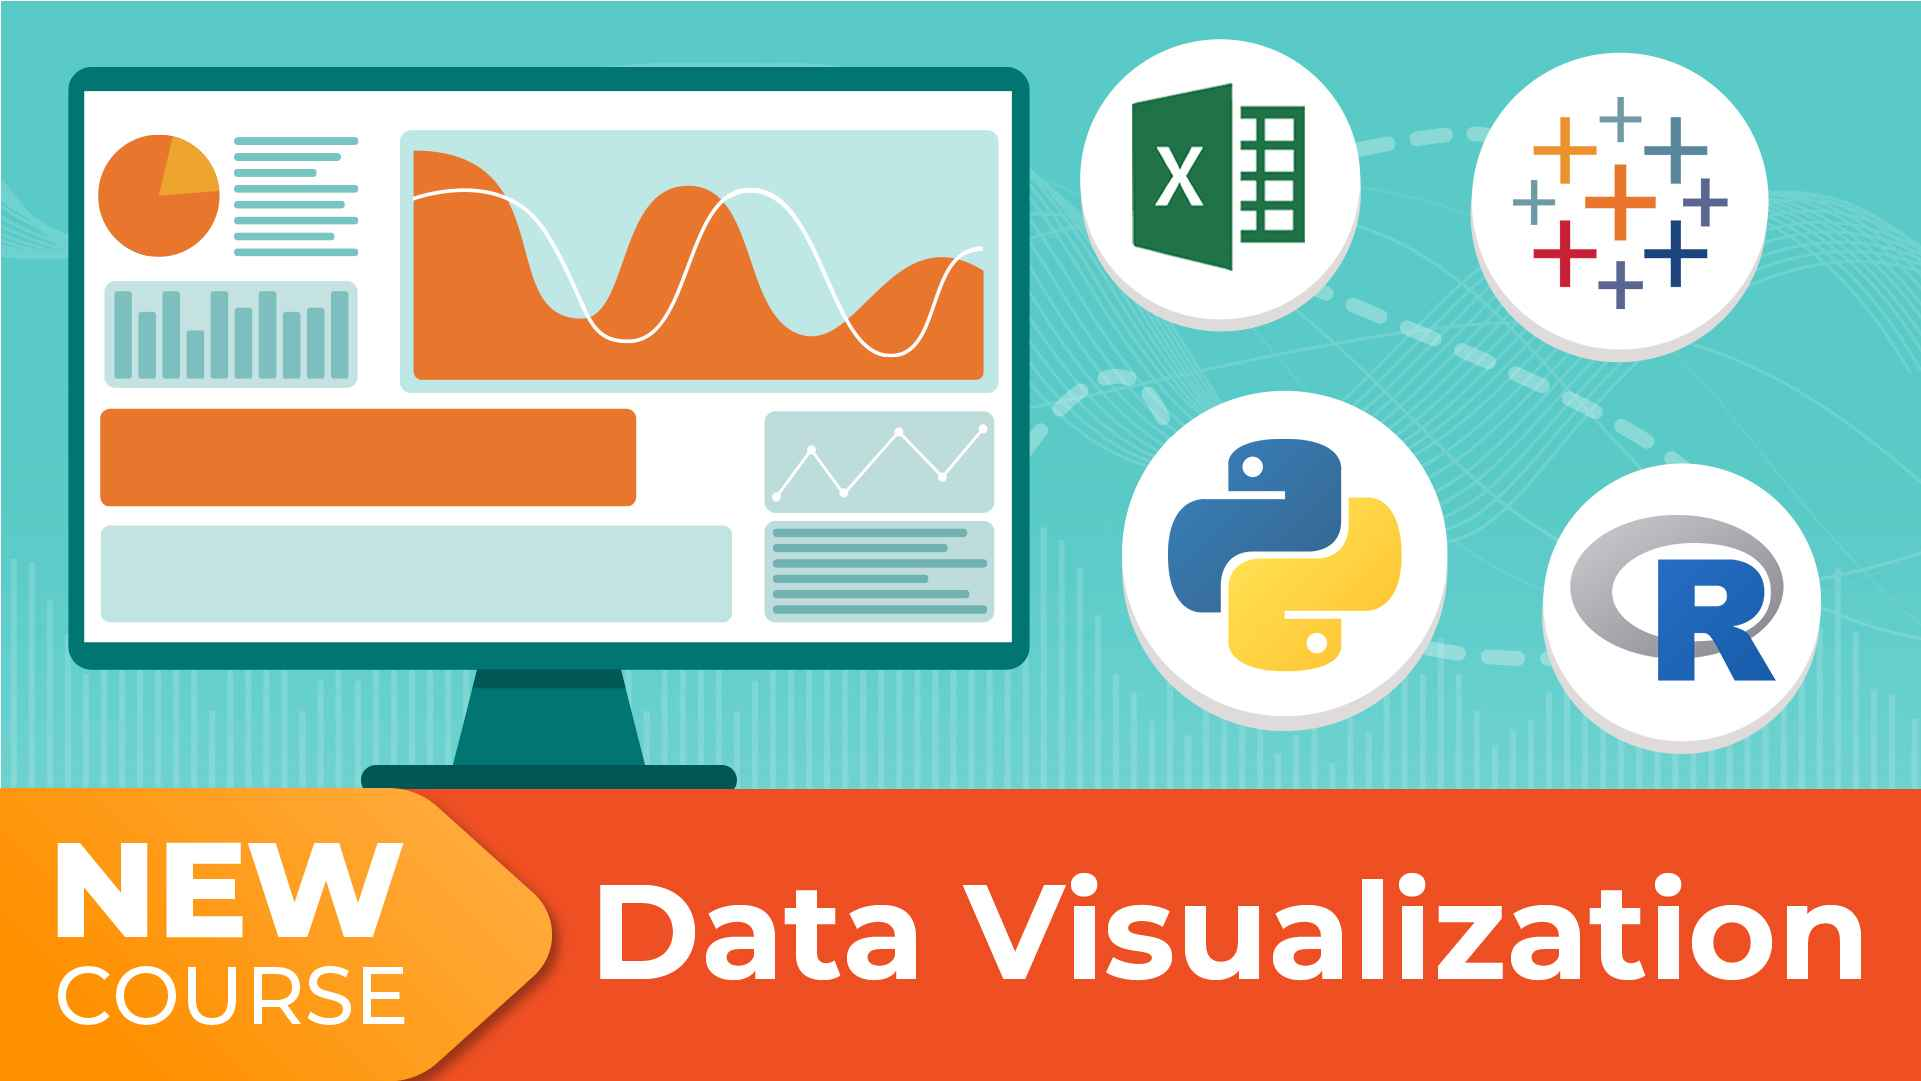 New Course! Data Visualization with Python, R, Tableau, and Excel